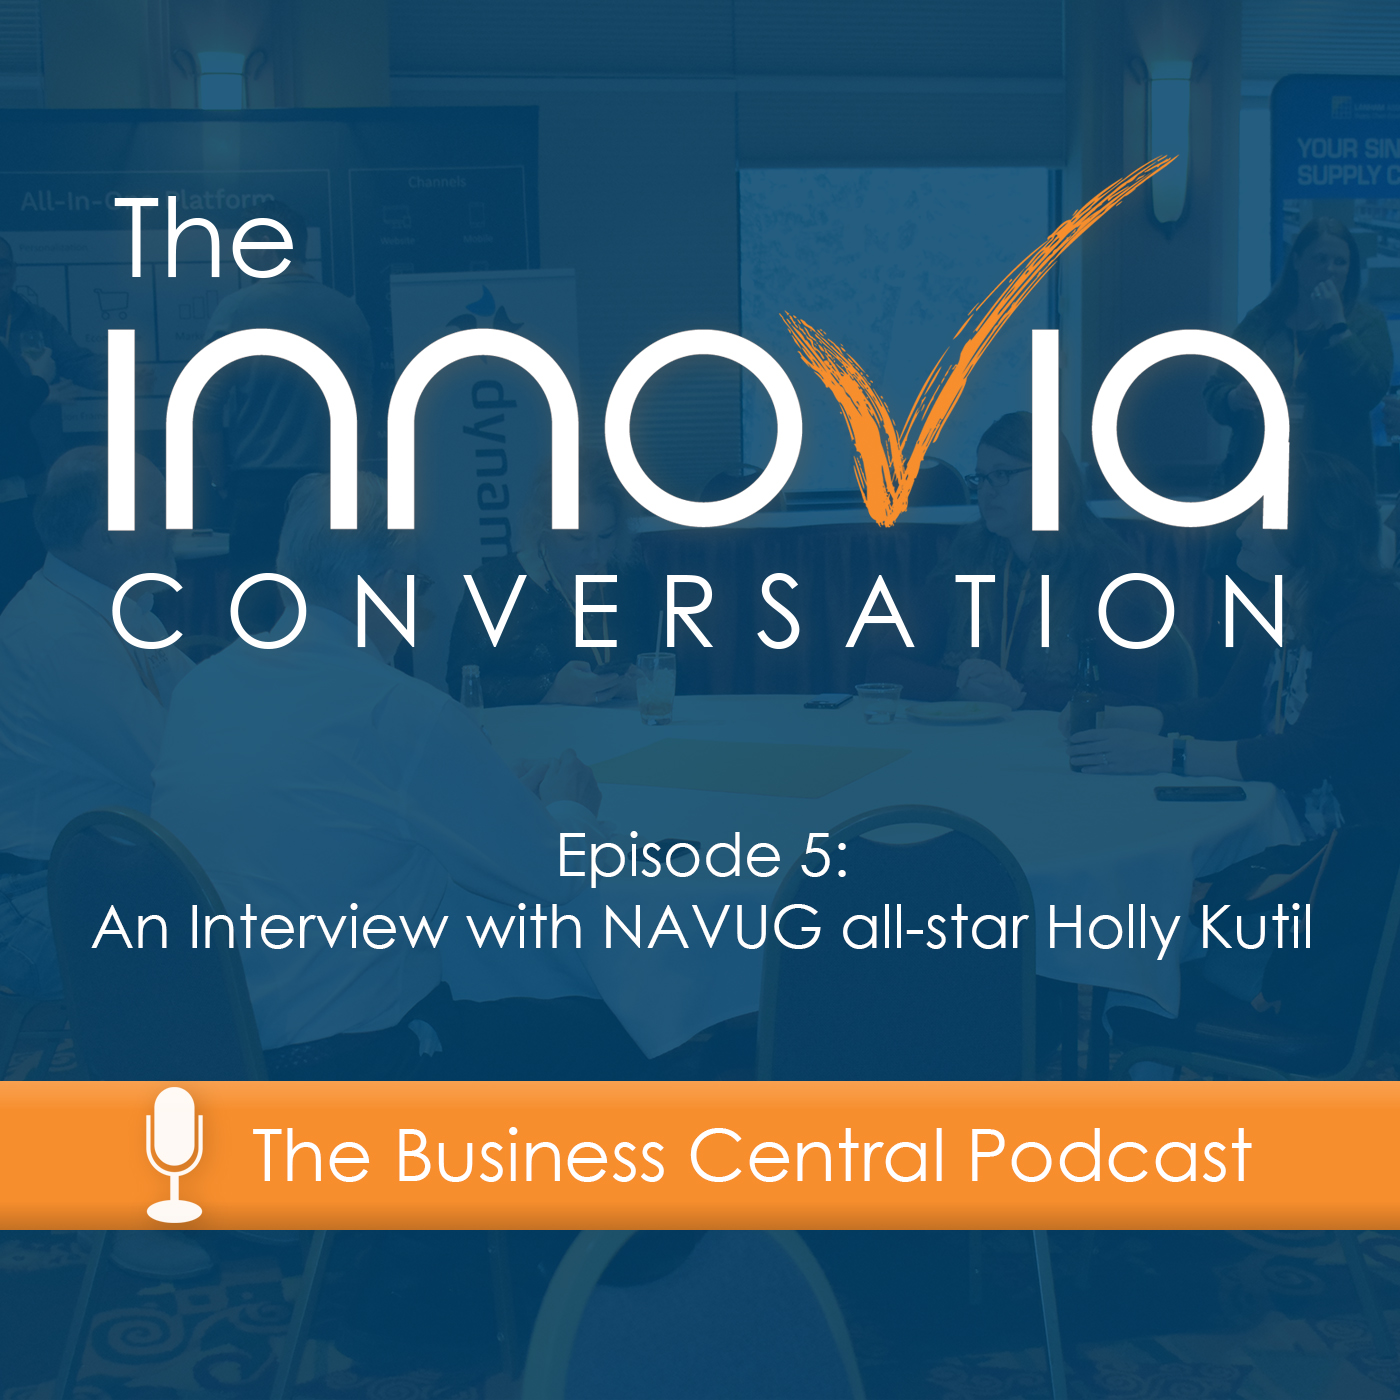 An Interview with NAVUG all-star Holly Kutil